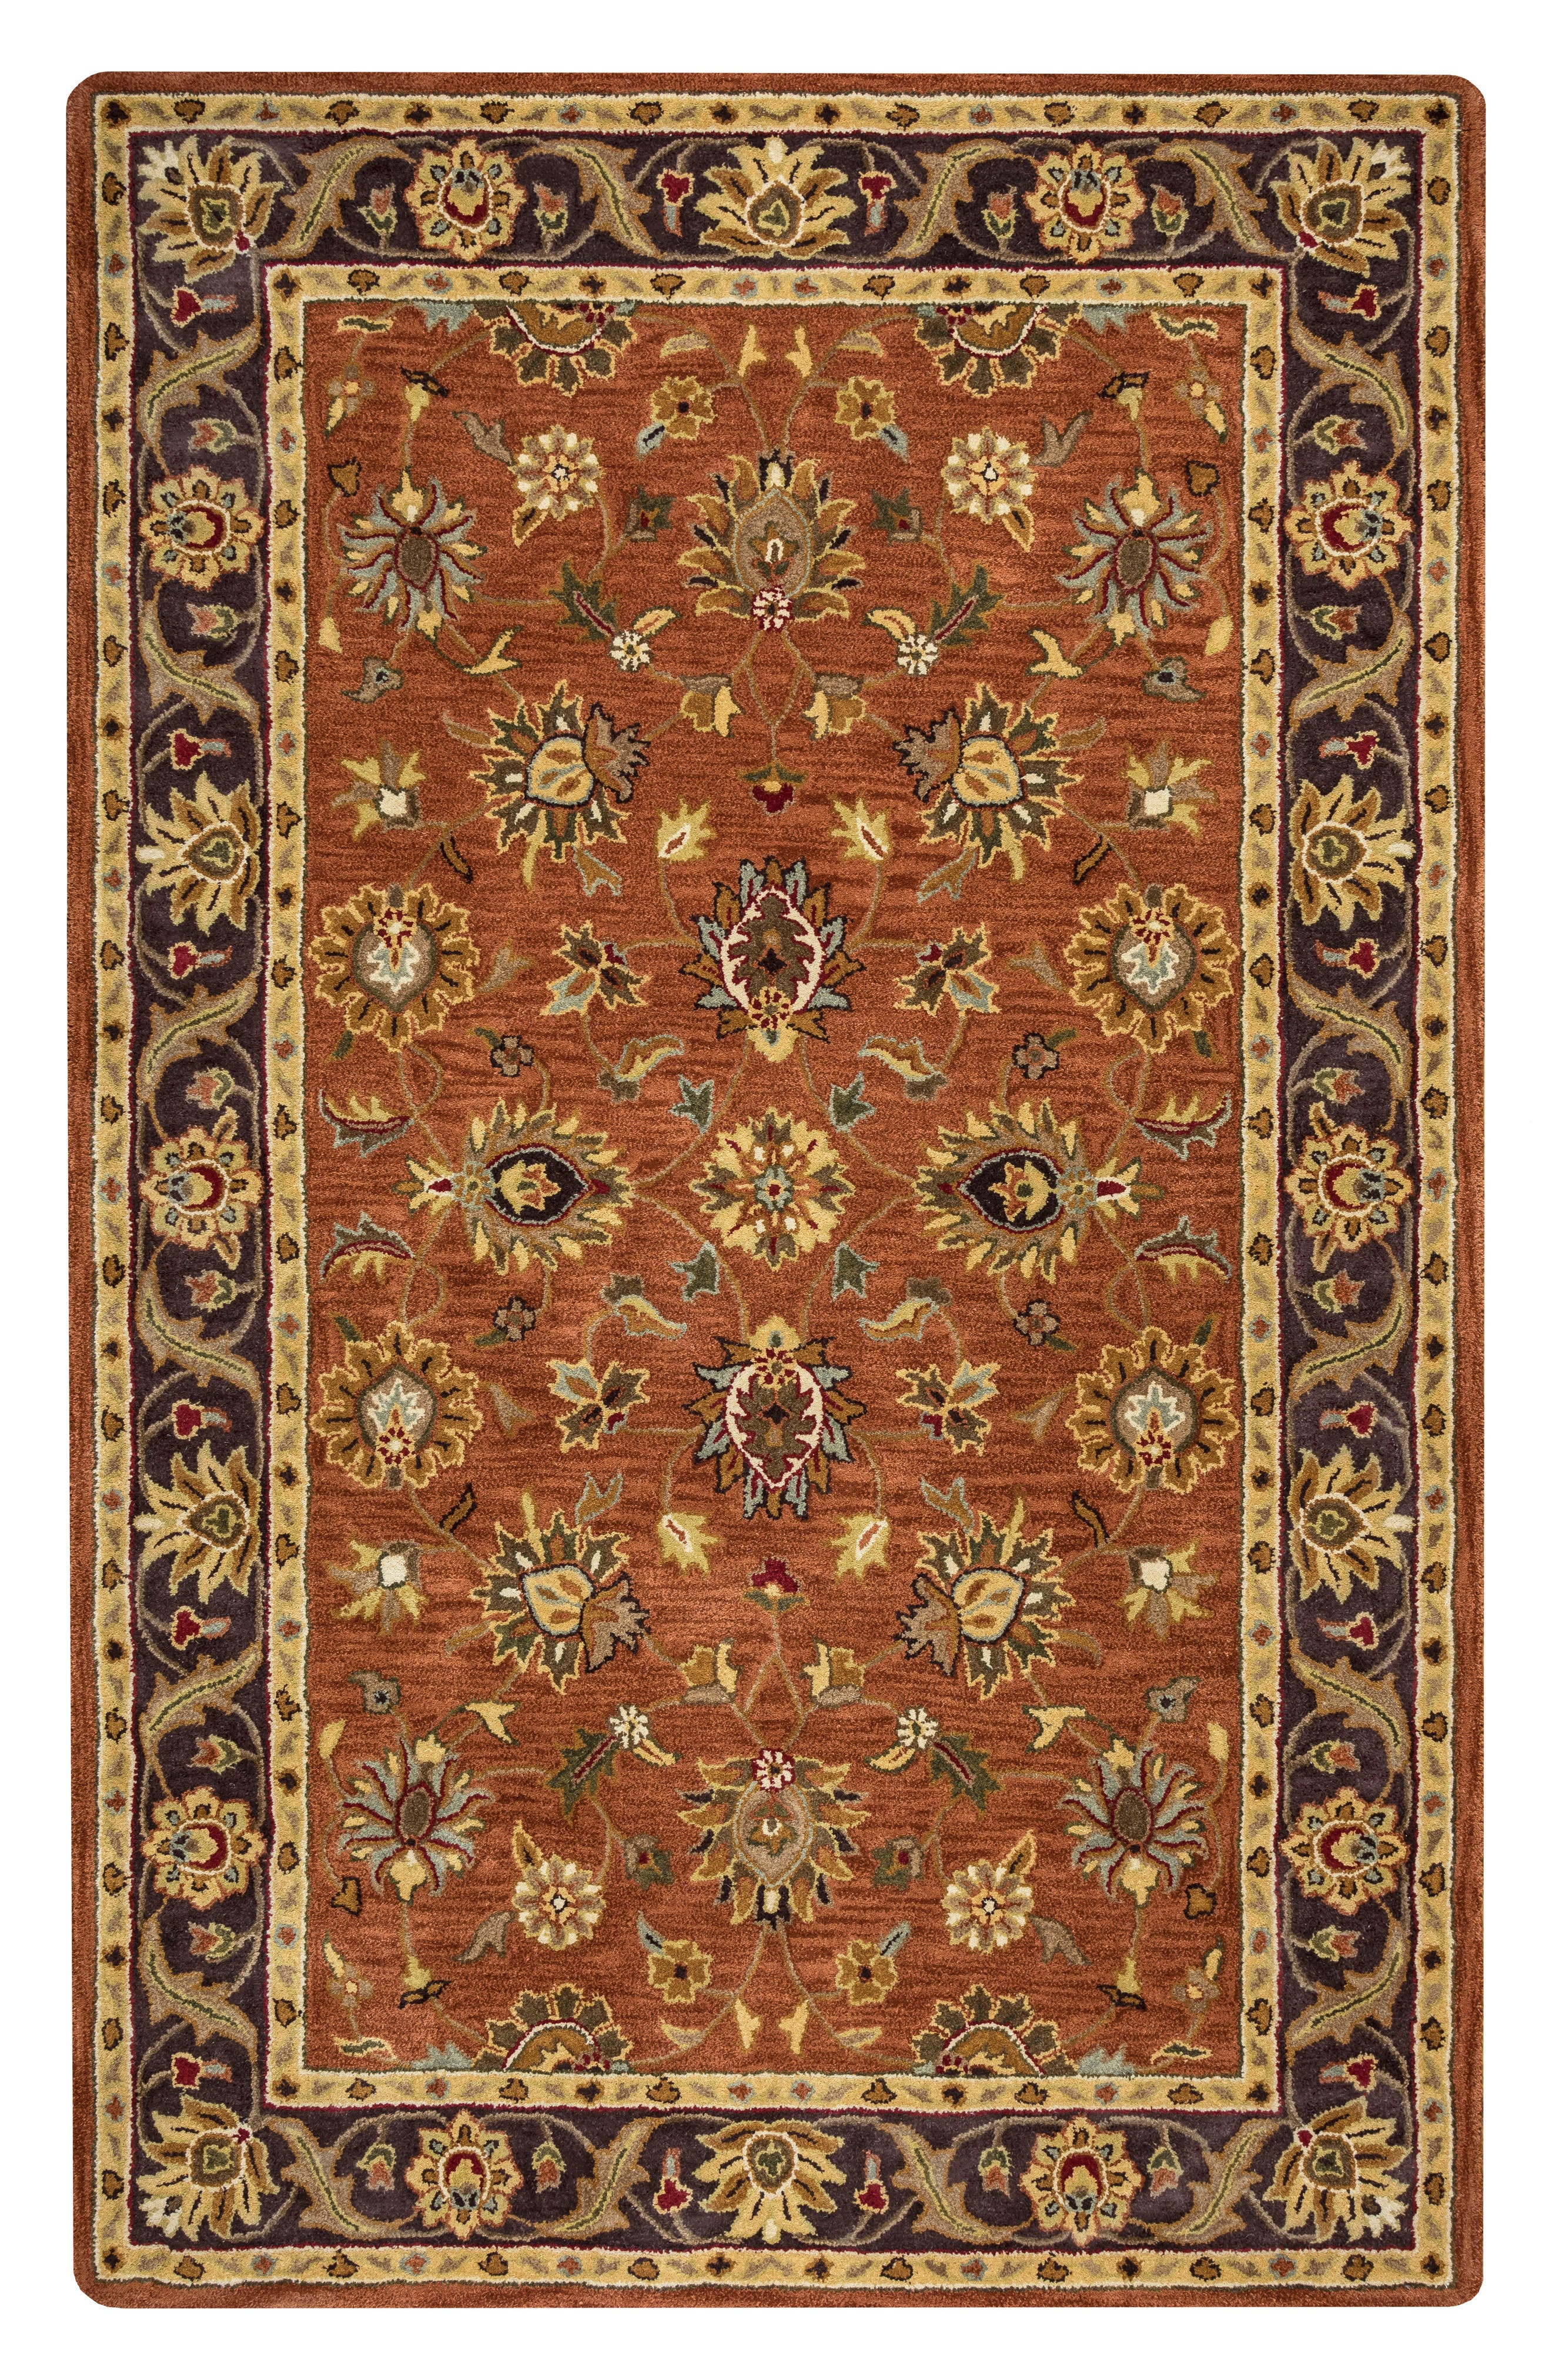 Amalia Hand Tufted Wool Area Rug,                         Main,                         color, 220